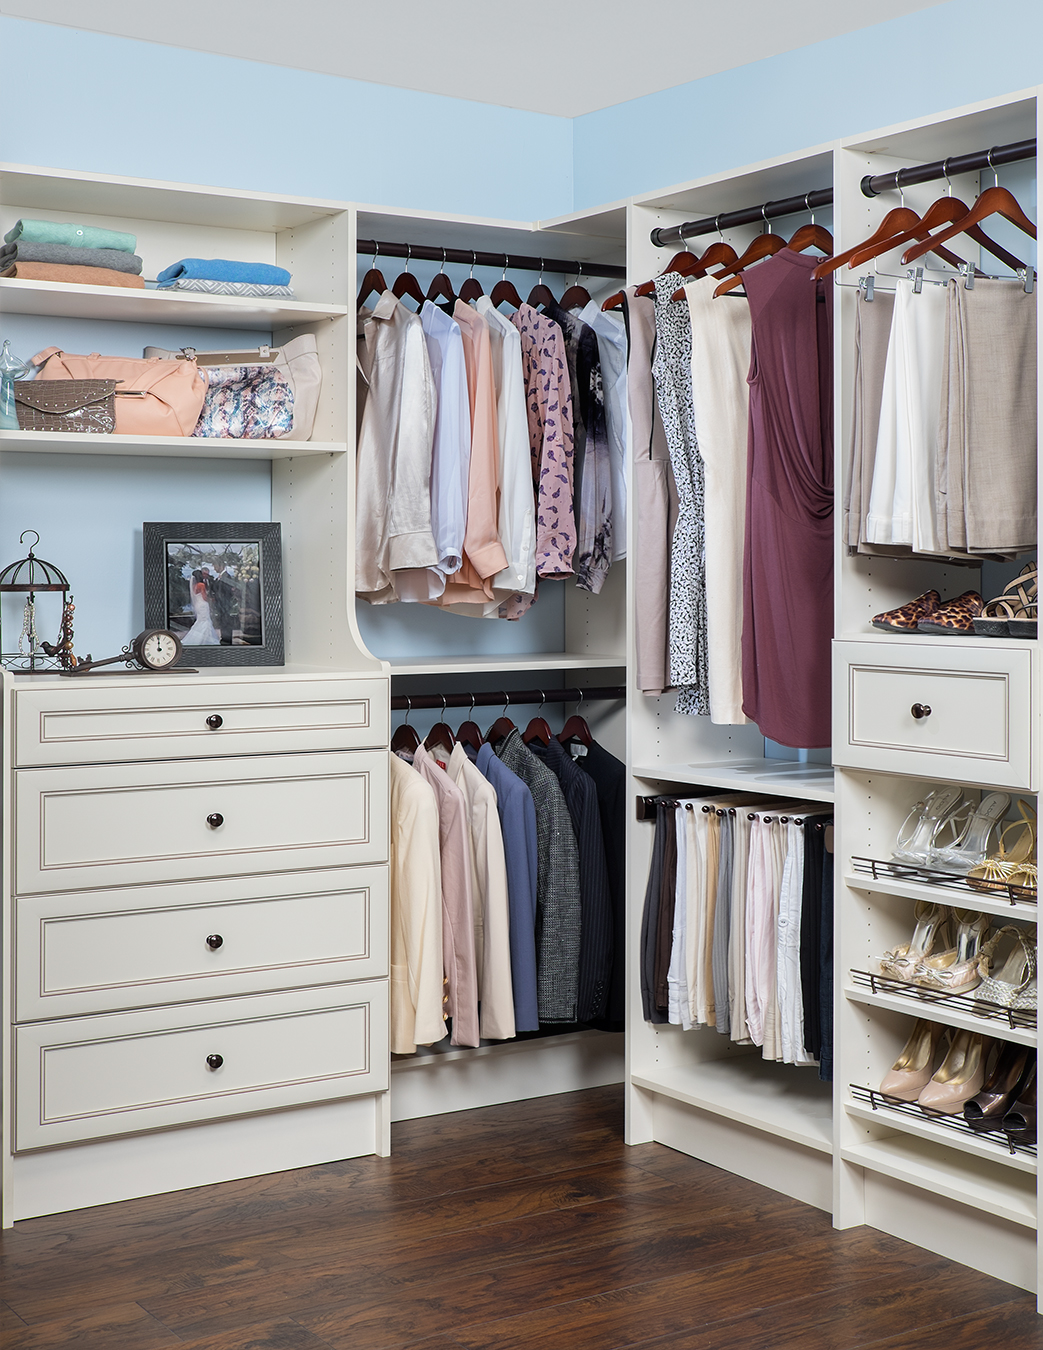 Walk In Closets That Are The Definition Of Organization: Walk-In Closet Design In Michigan